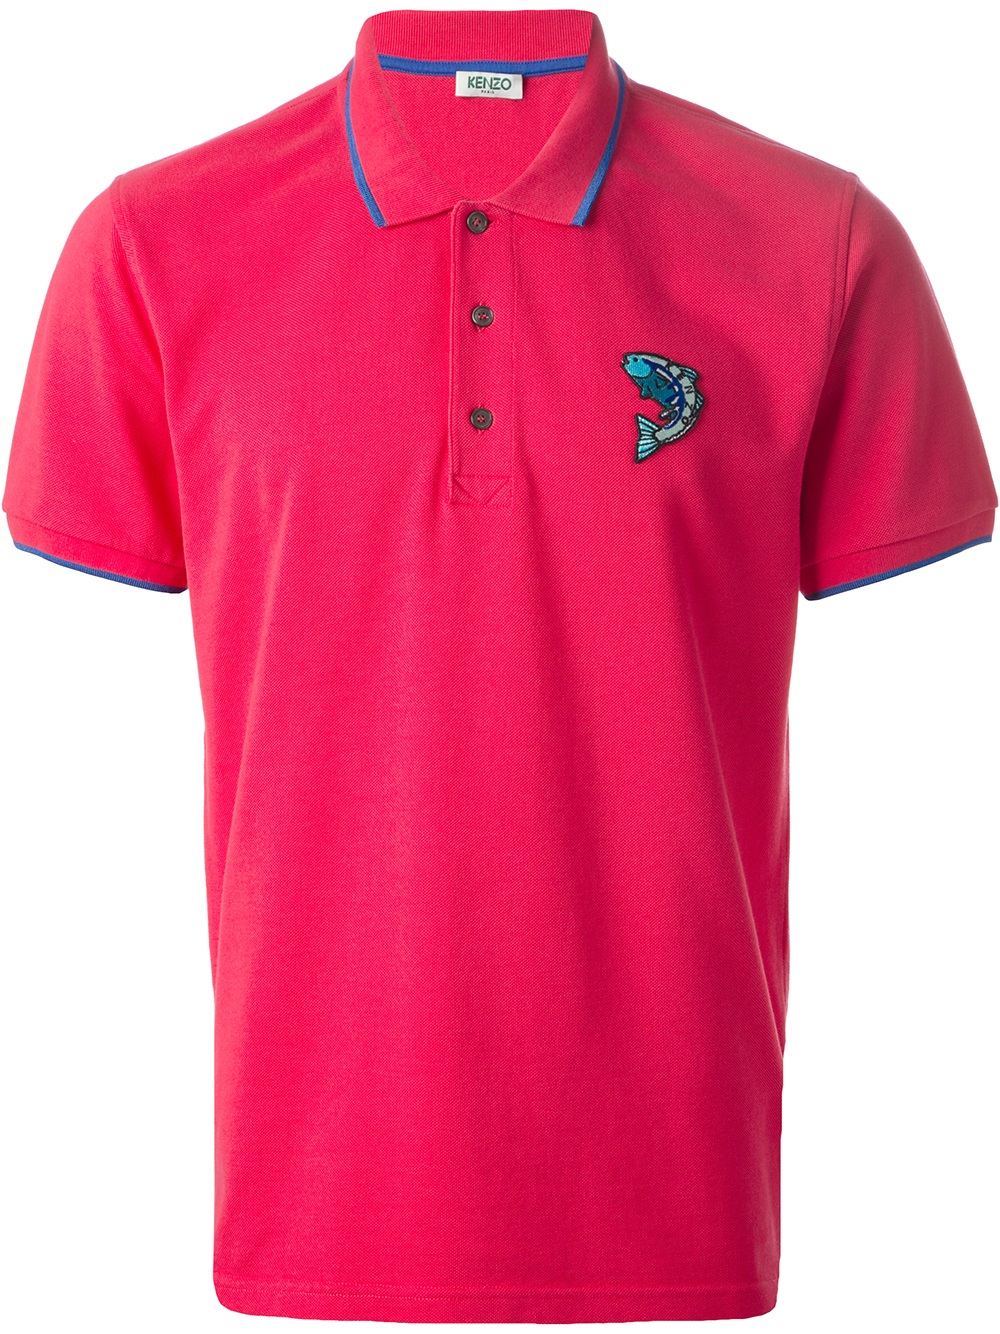 Kenzo fish polo shirt in purple for men pink purple lyst for Polo shirt with fish logo